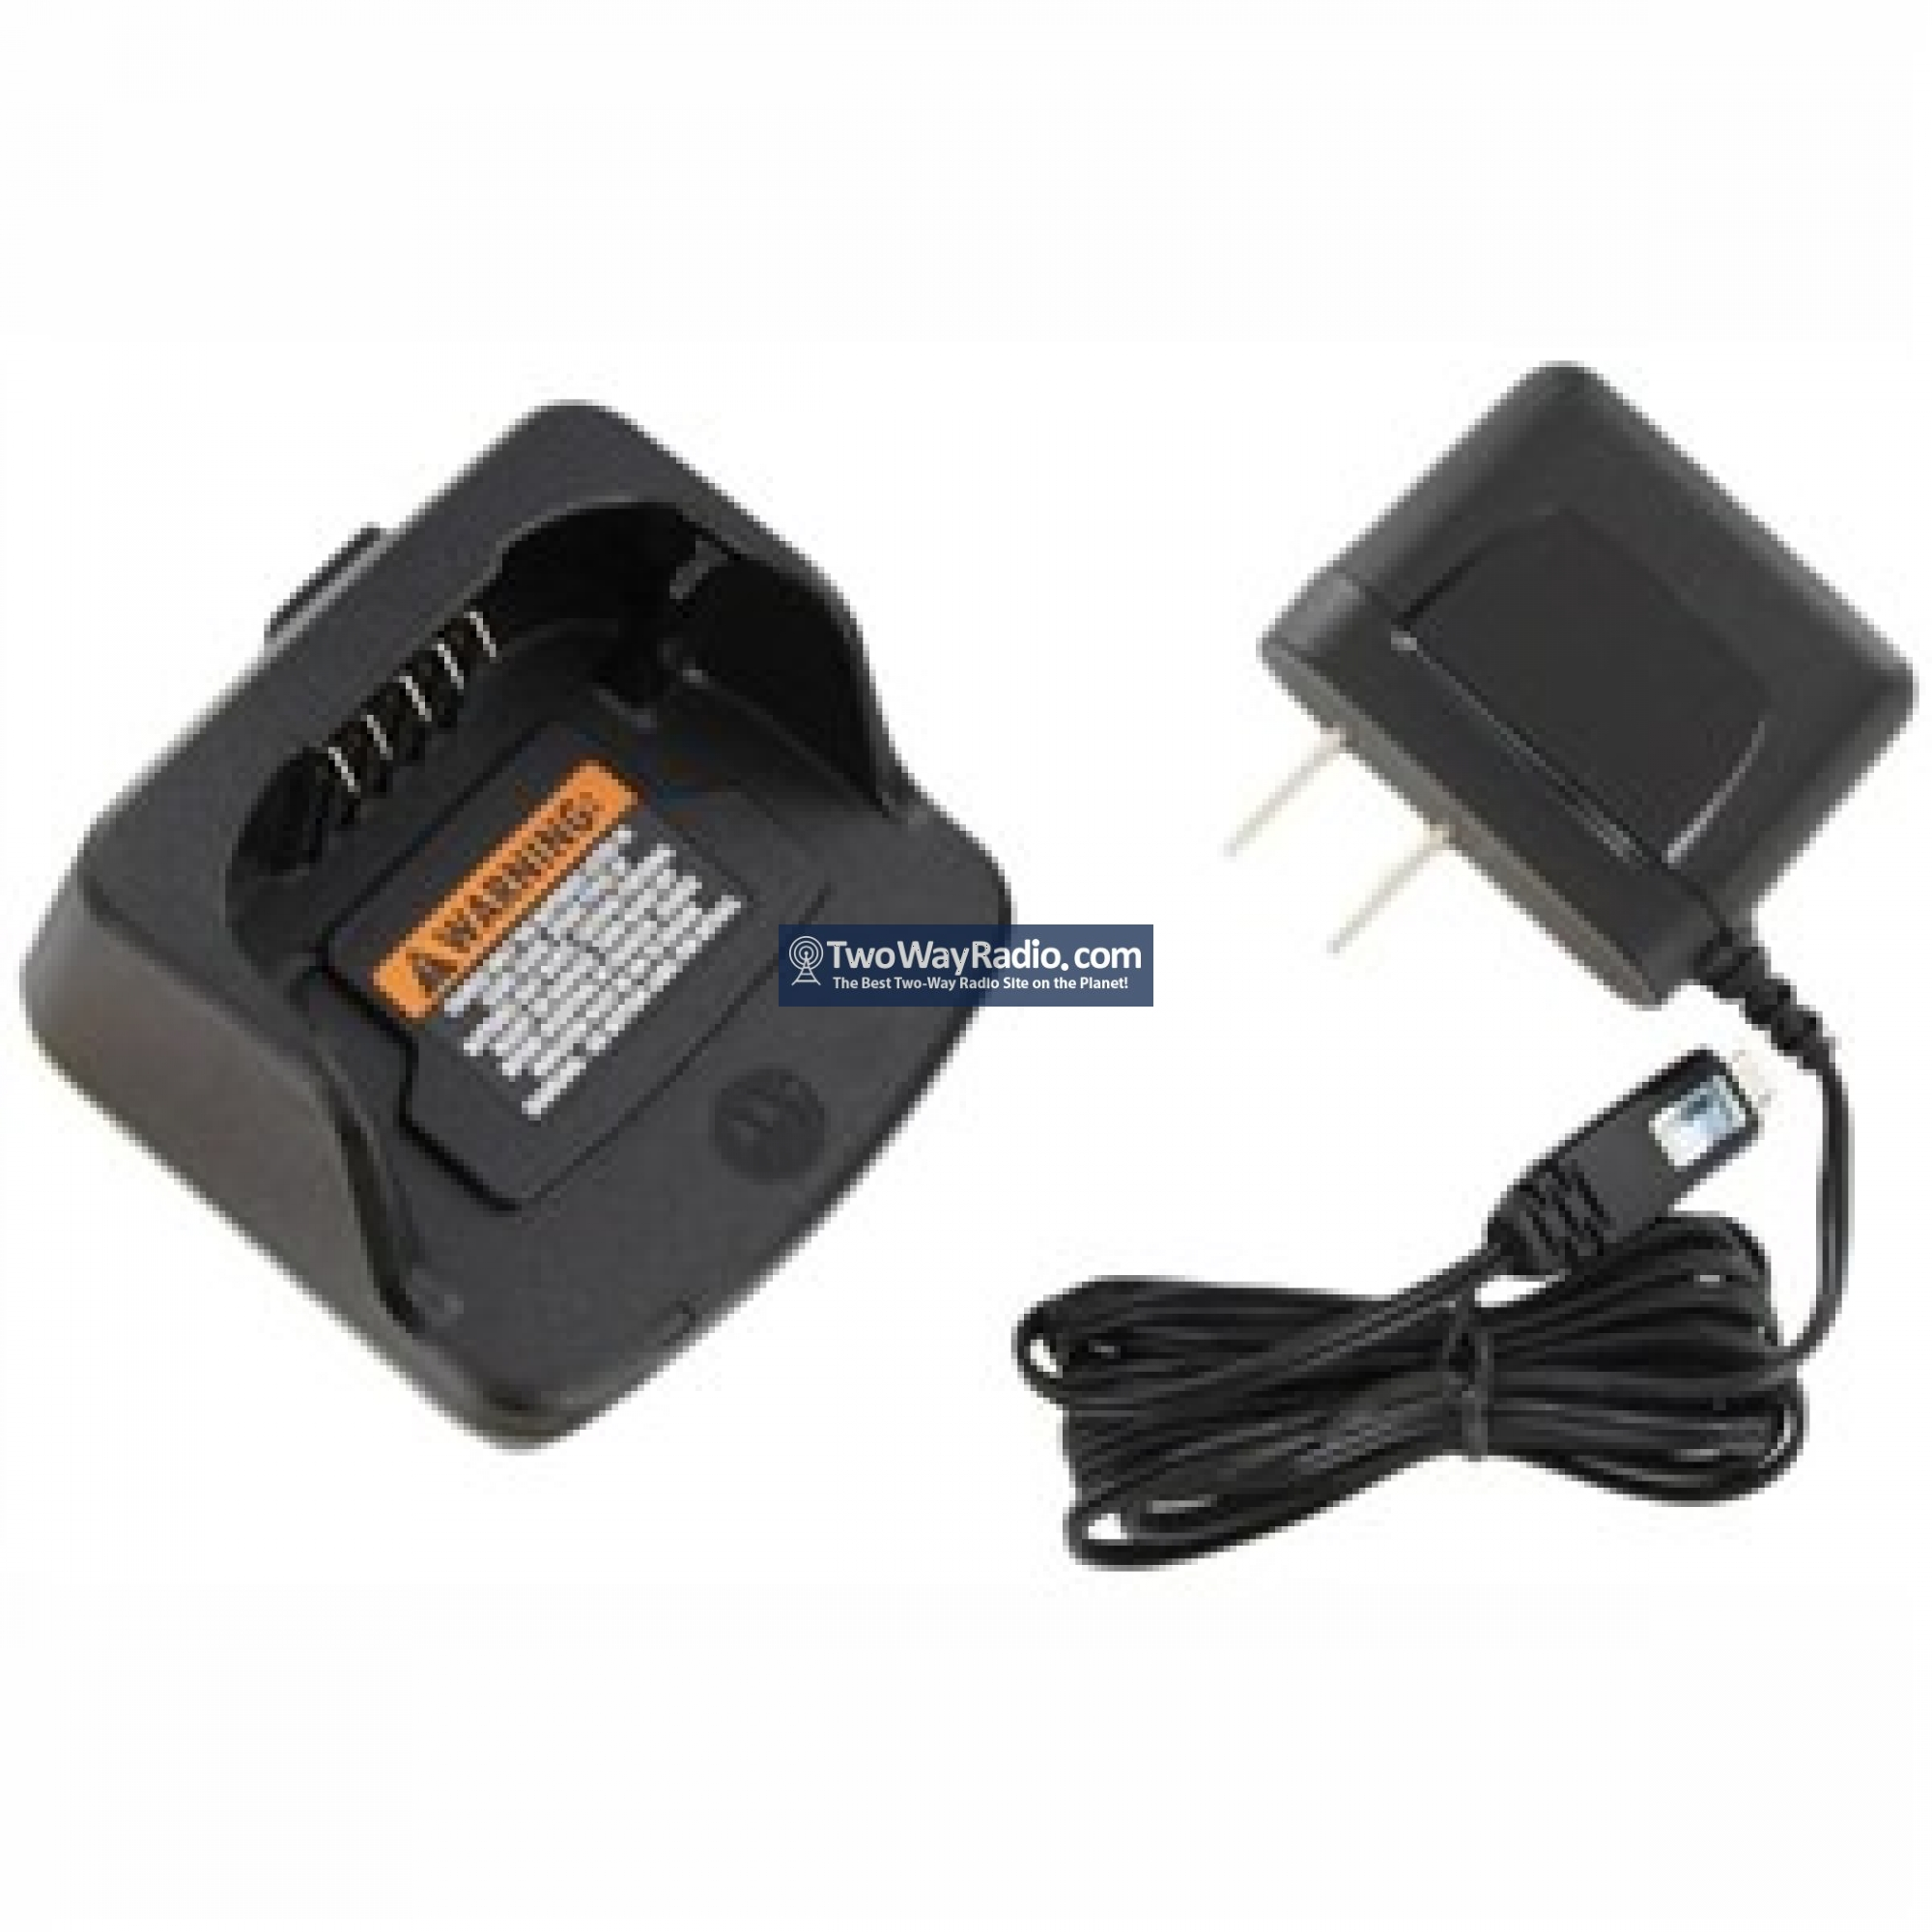 120v Ac Battery Charger Image Of Powermax Pm3100 To 12v Dc Converter 100 Amp Here Motorola Pmln6394 Kit Drop In